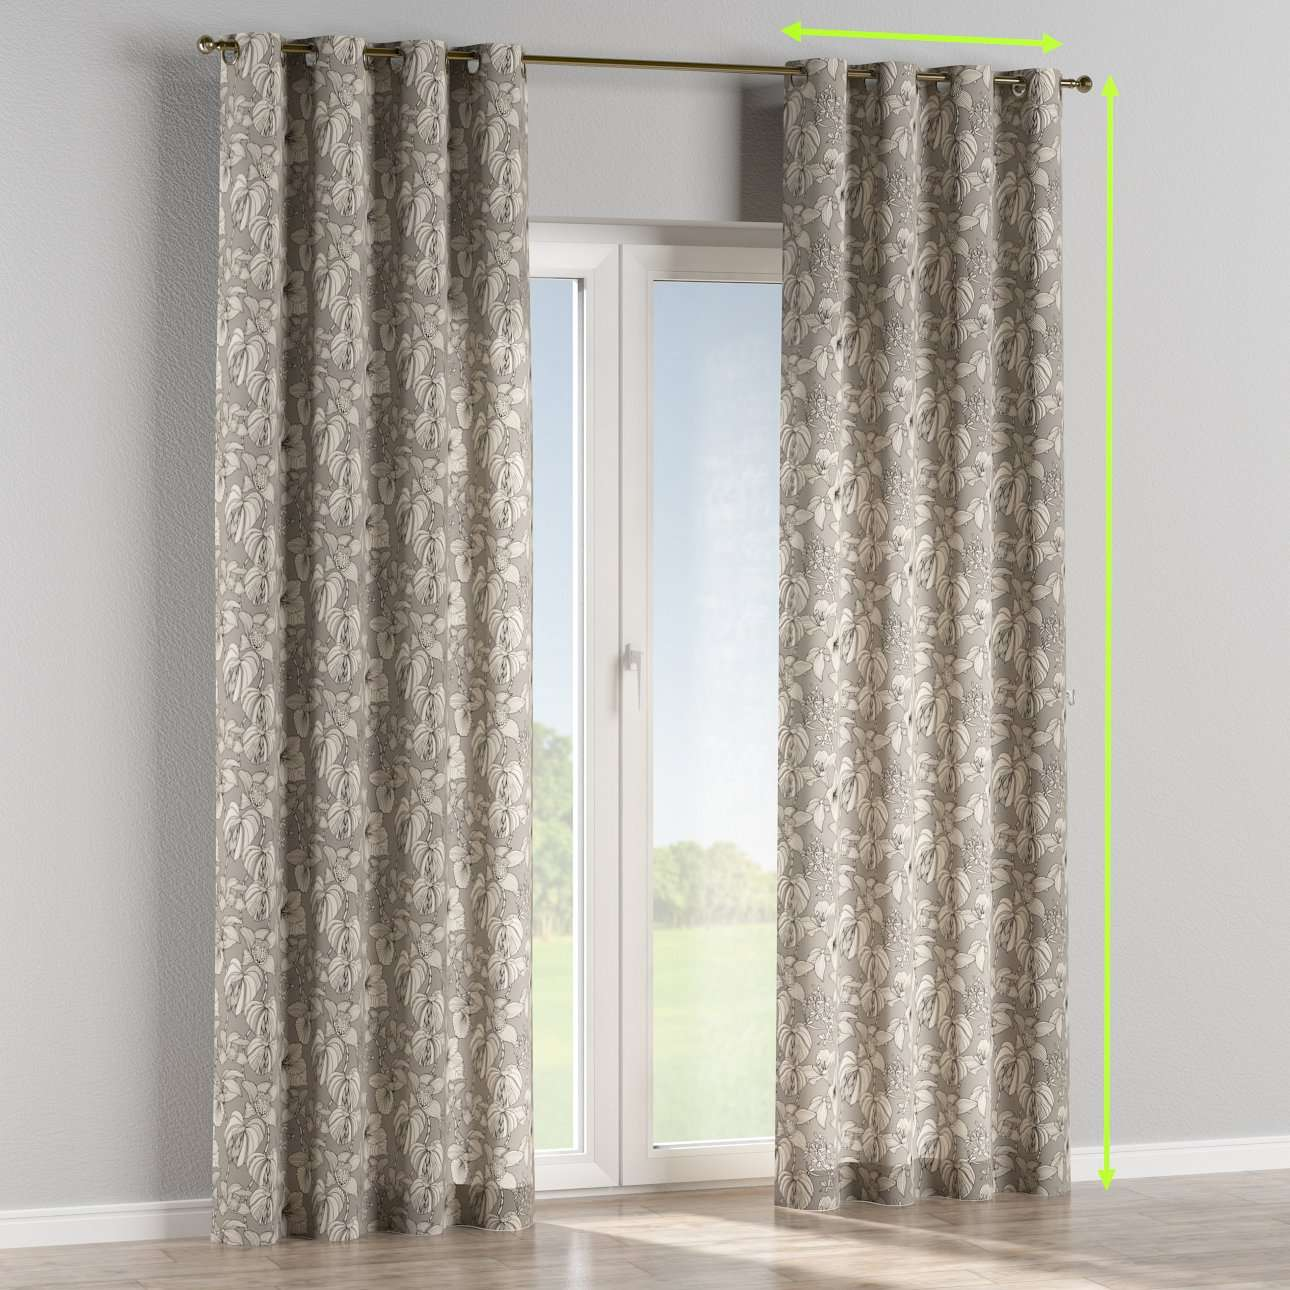 Eyelet lined curtains in collection Brooklyn, fabric: 137-80